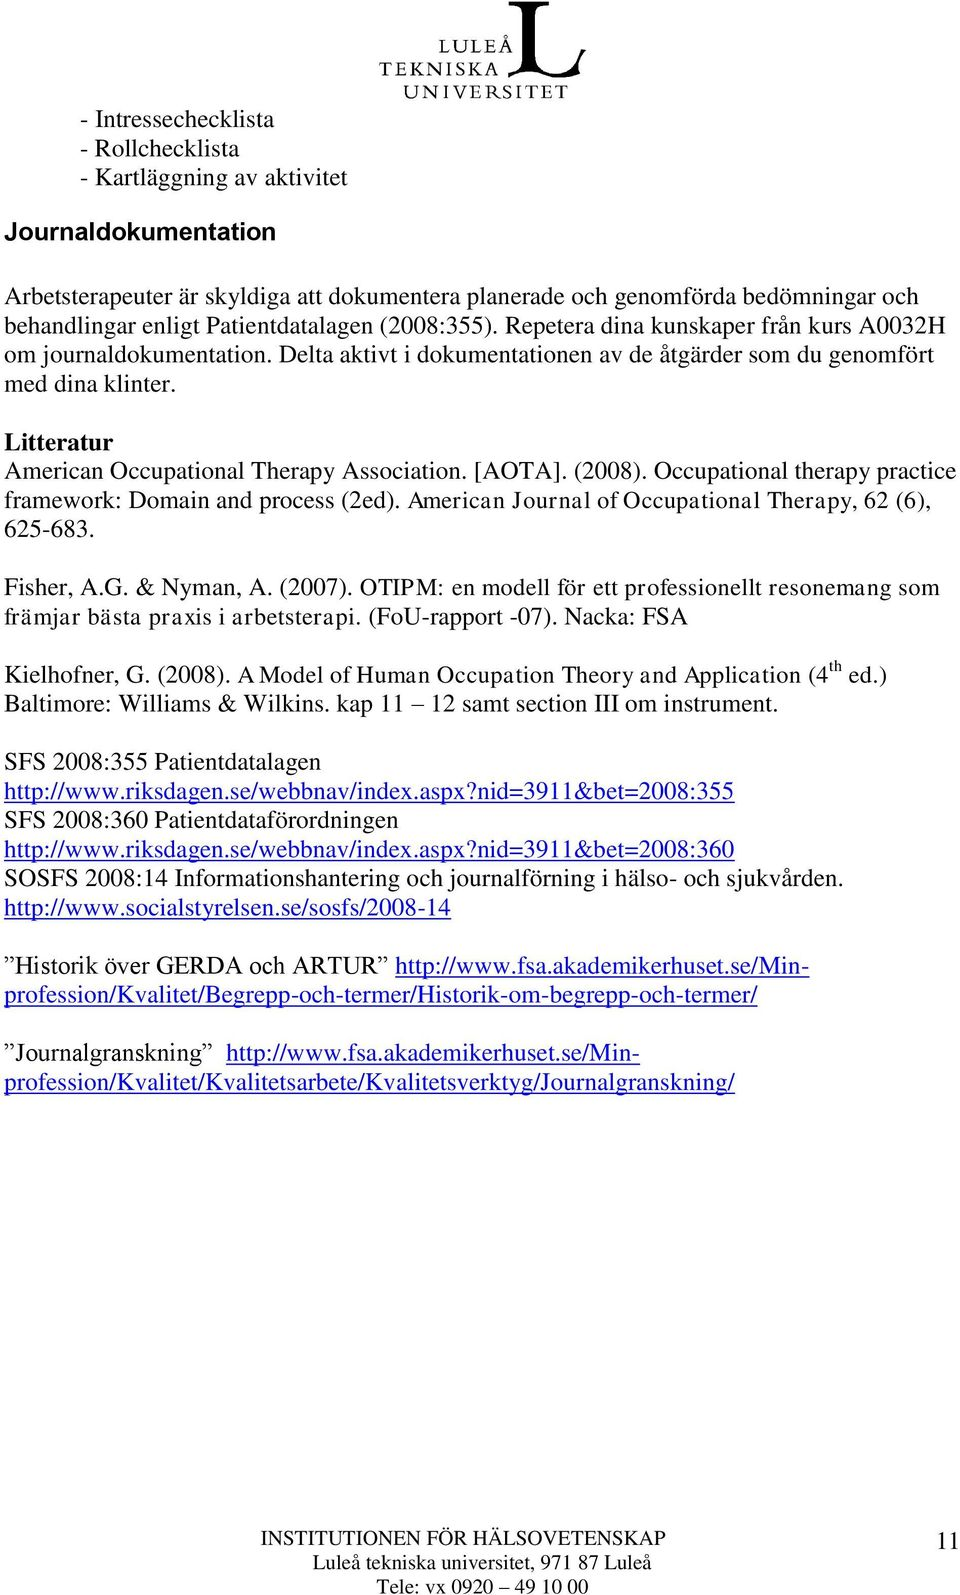 Litteratur American Occupational Therapy Association. [AOTA]. (2008). Occupational therapy practice framework: Domain and process (2ed). American Journal of Occupational Therapy, 62 (6), 625-683.